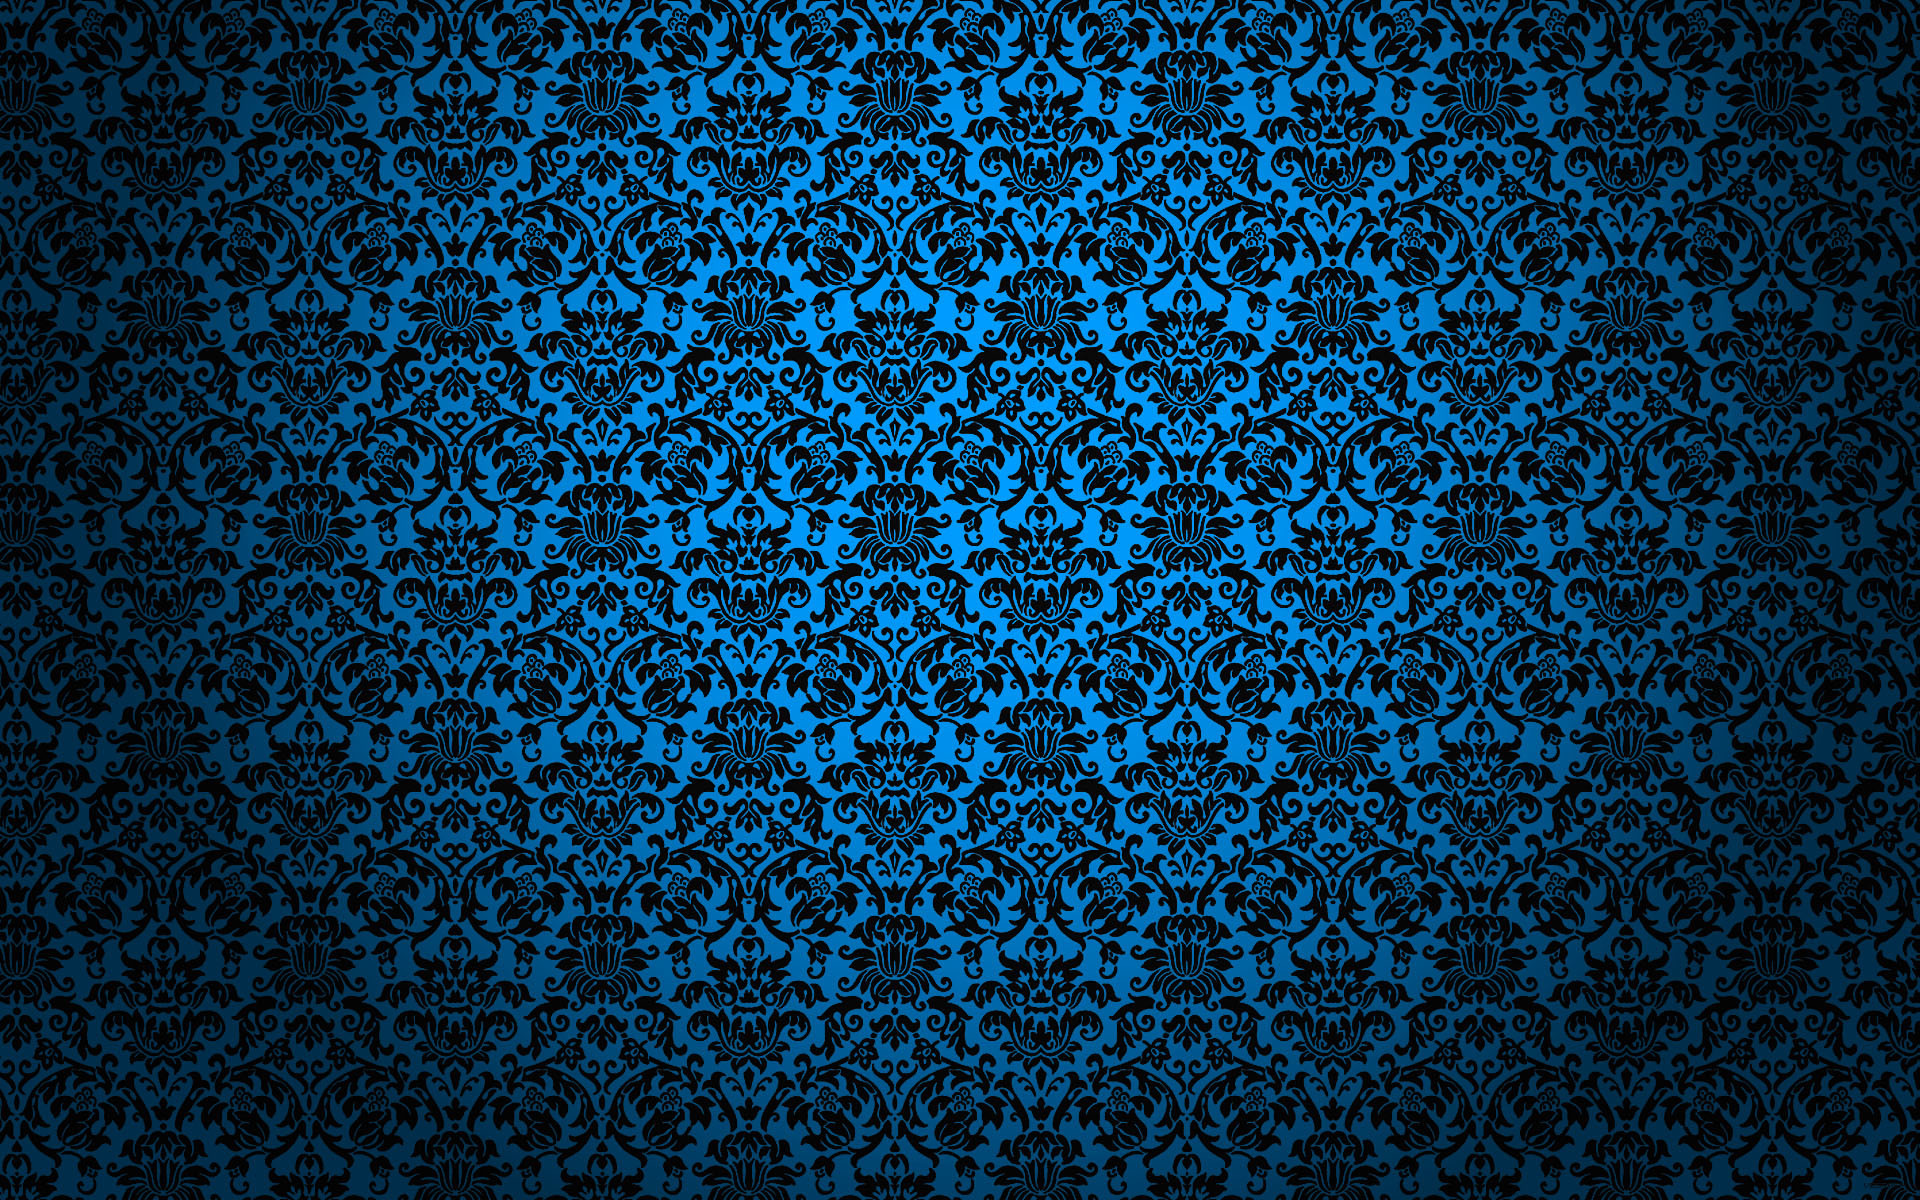 Wallpaper texture wallpaper blue textures wallpapers textures 1920x1200